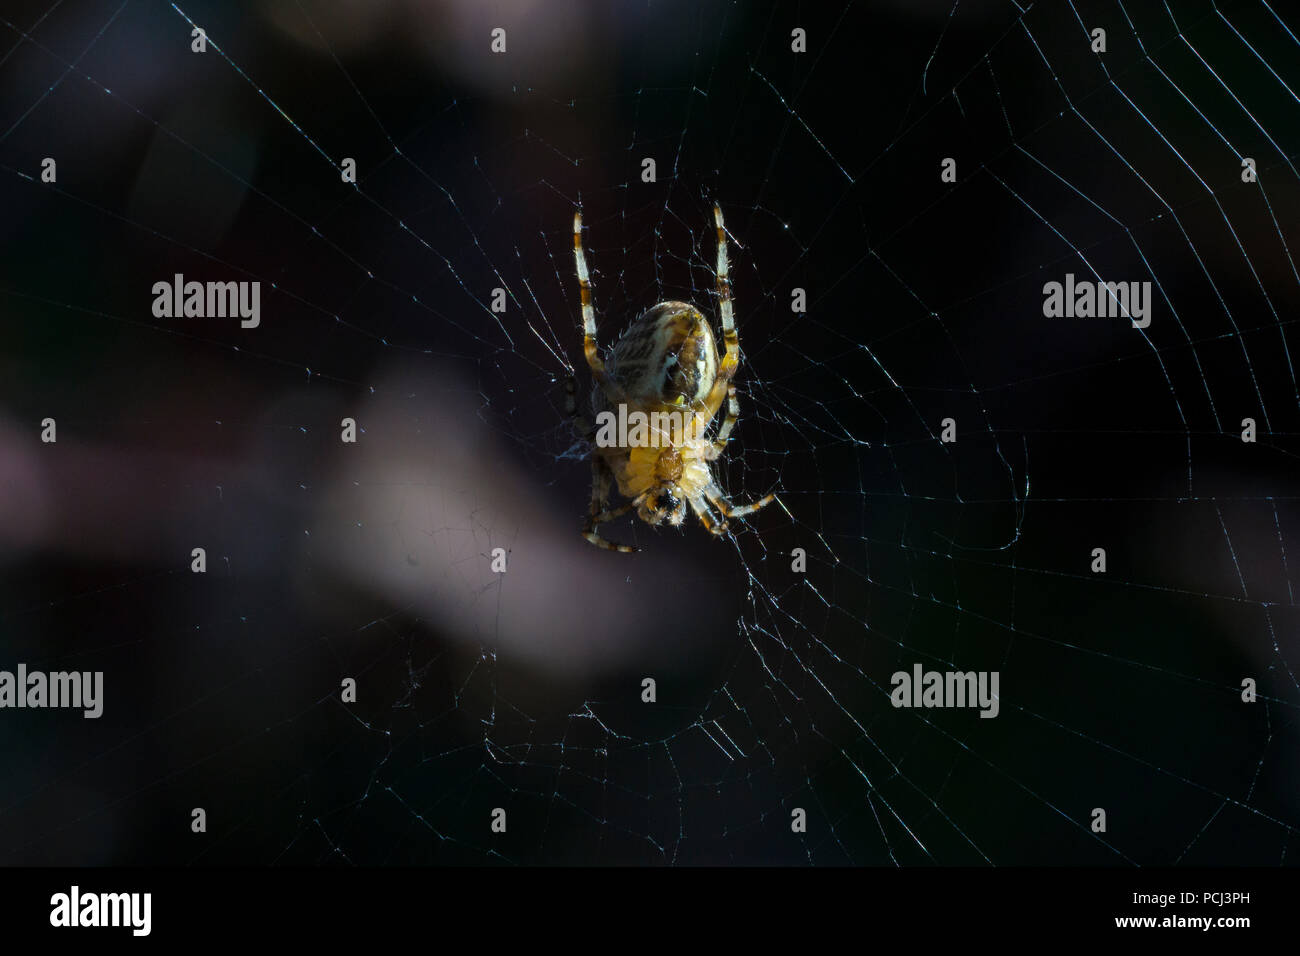 garden-spider-mending-web-PCJ3PH.jpg